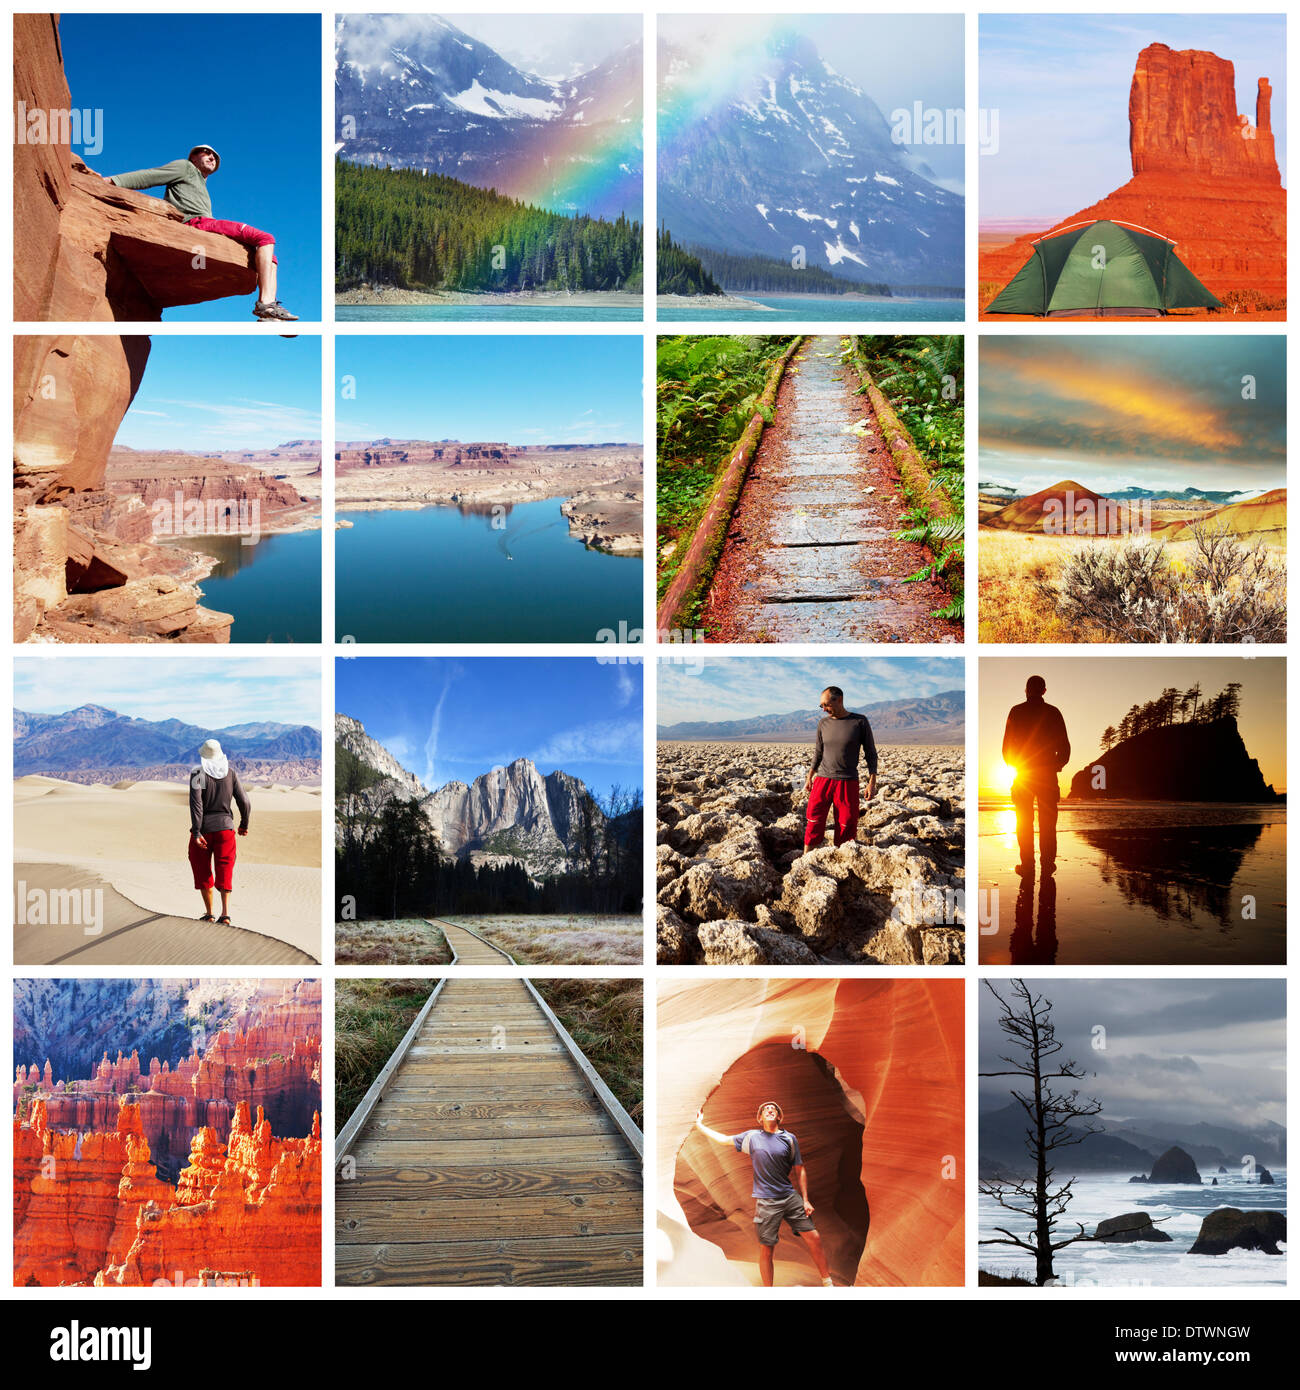 Hike collage - Stock Image